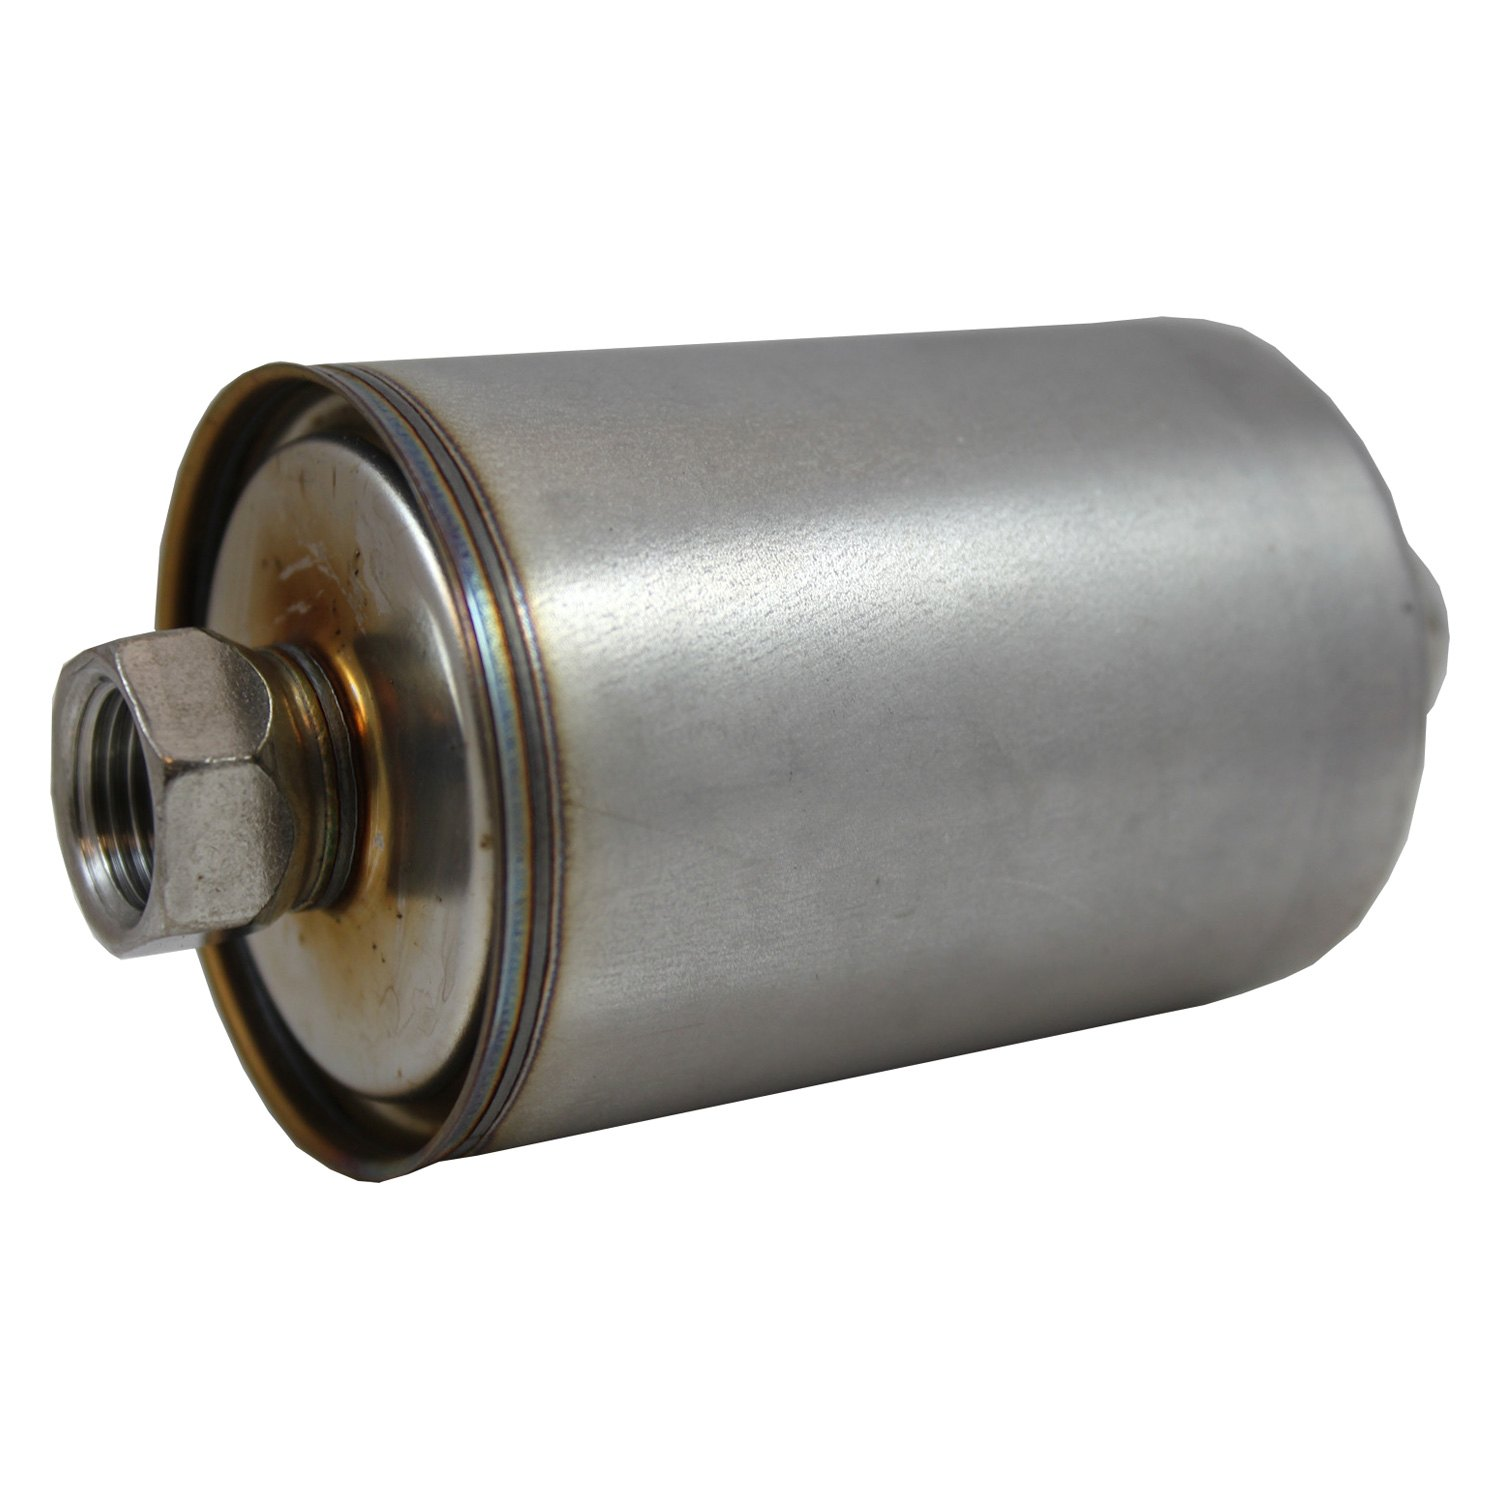 hight resolution of 2007 avalanche fuel filter